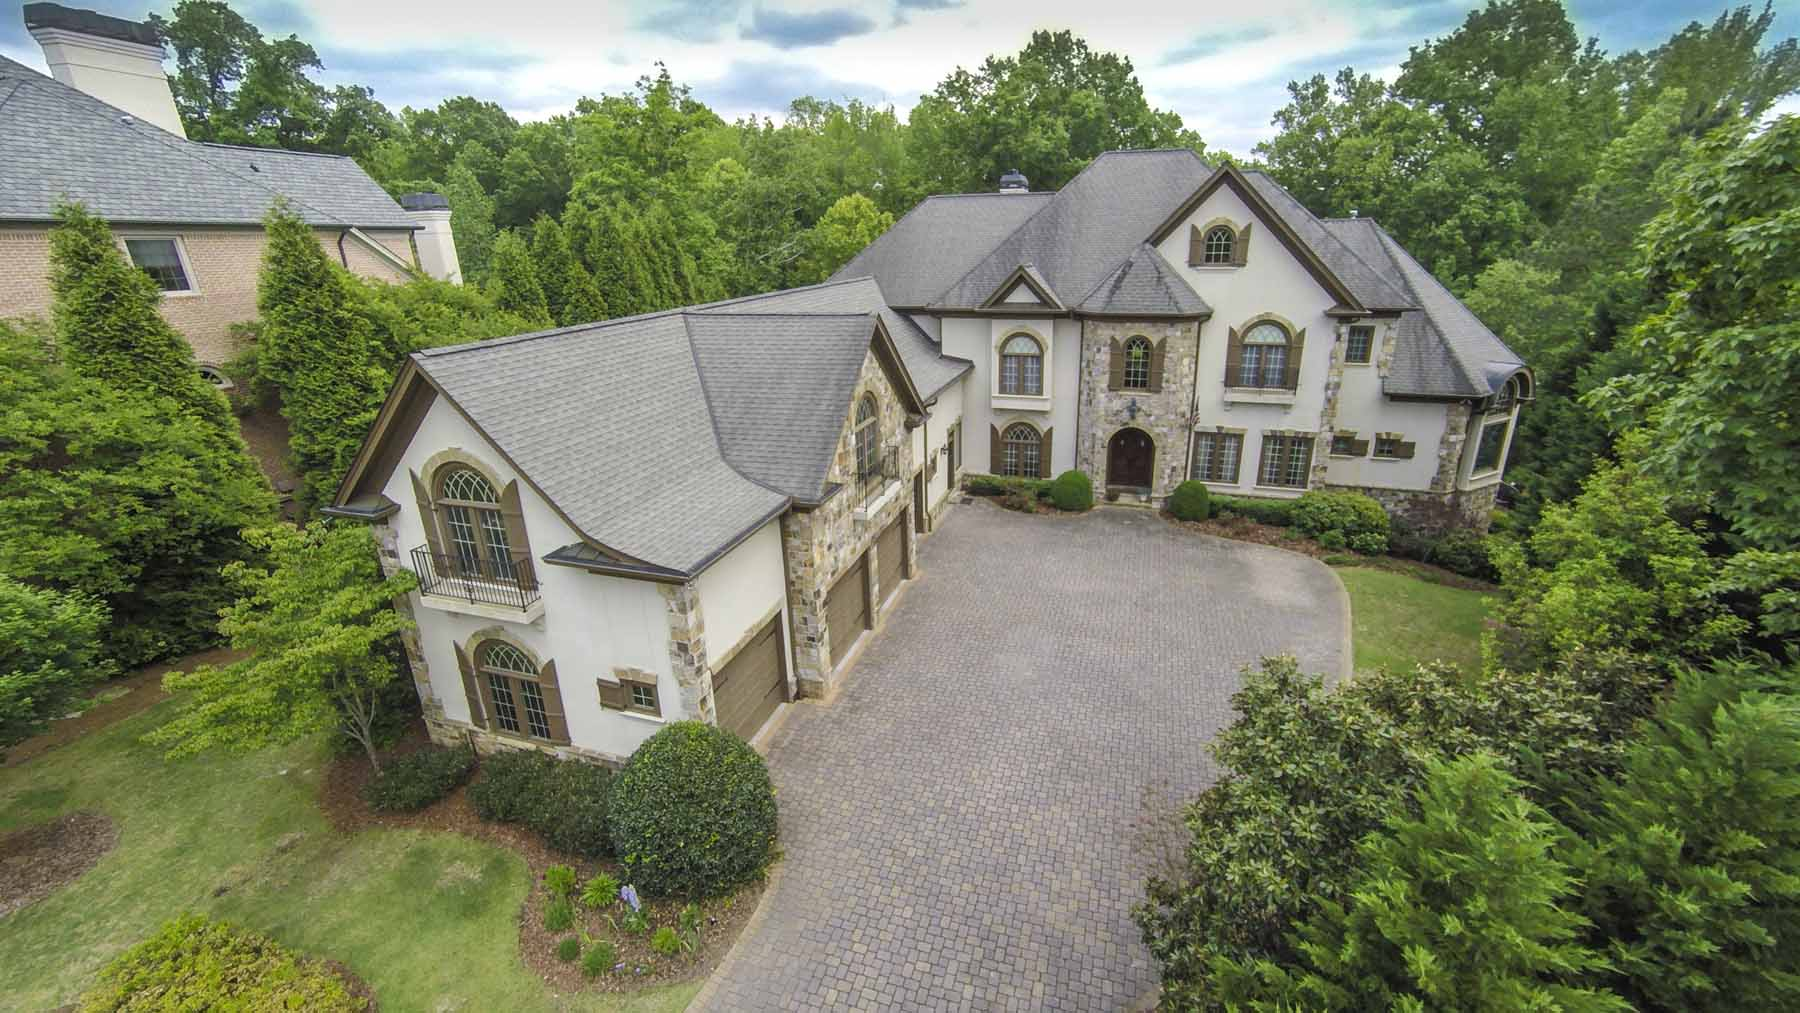 Casa Unifamiliar por un Venta en Stunning Home Meets Modern Updates on the Sparkling Chattahoochee River 500 Covington Cove Alpharetta, Georgia, 30022 Estados Unidos